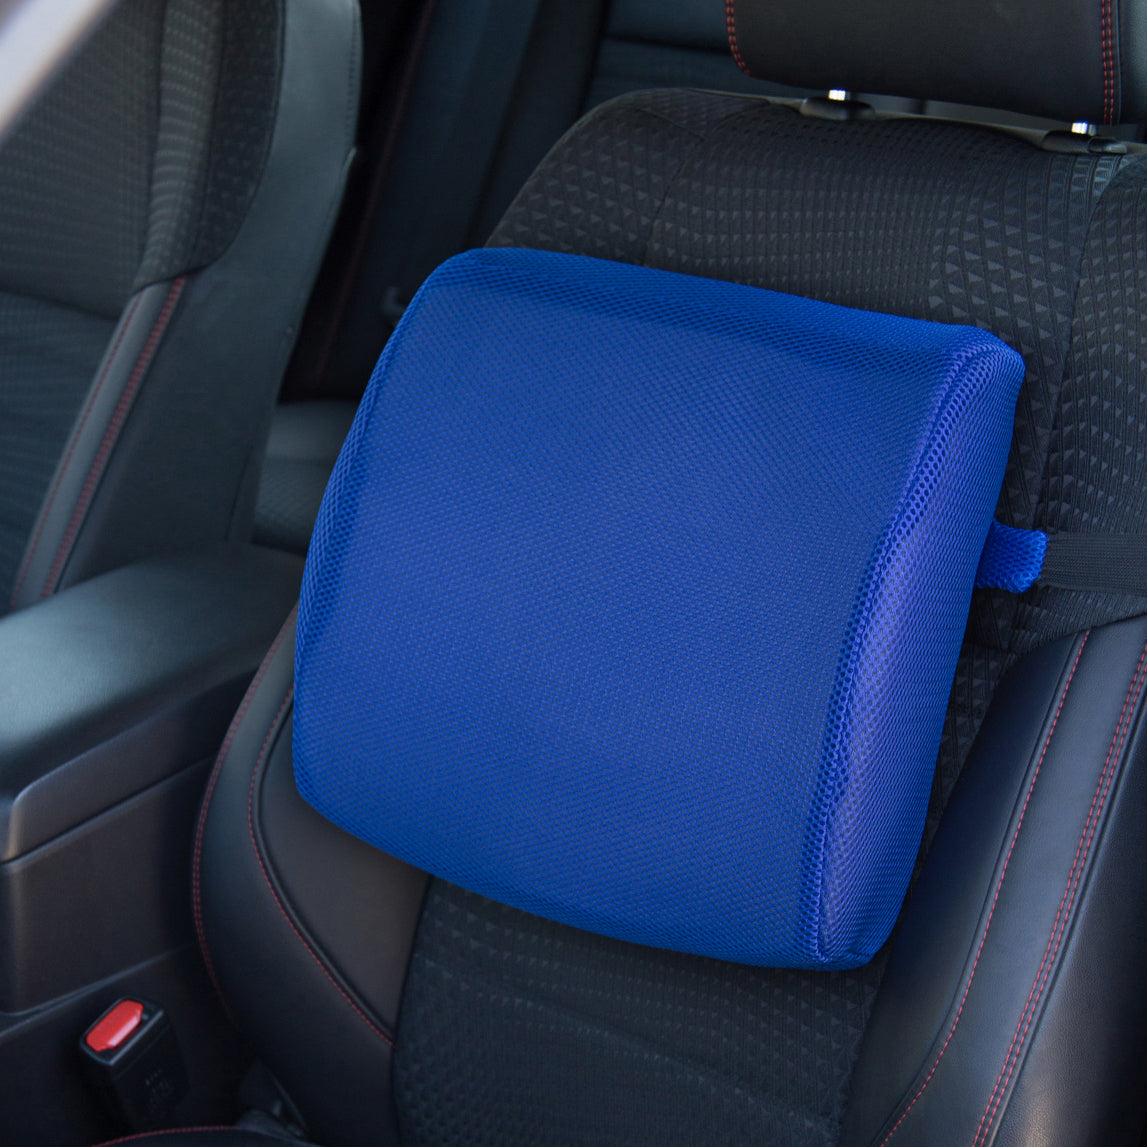 Memory Foam Lumbar Support Pillow Seat Cushion for Office Chair ...